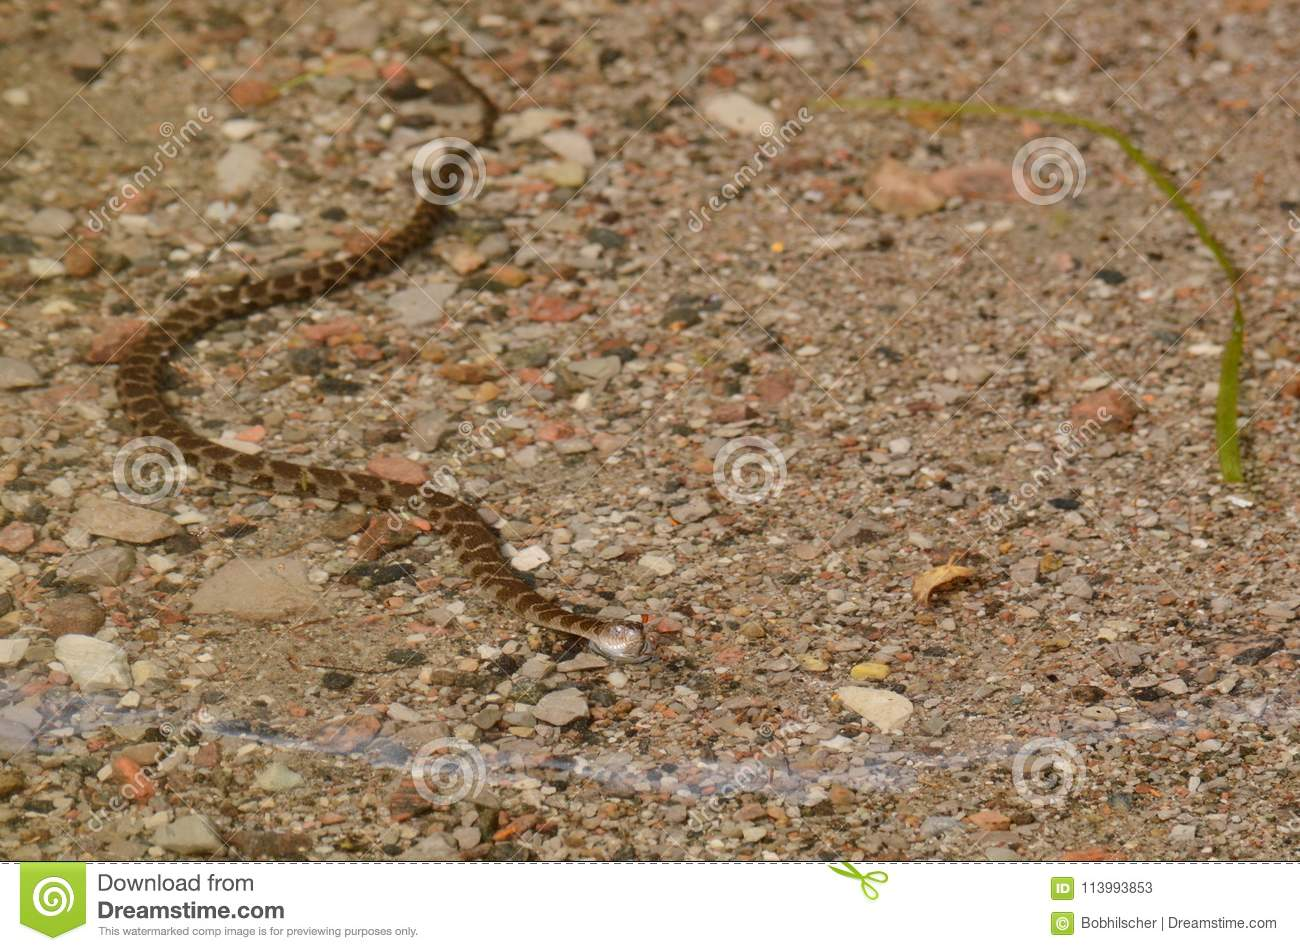 Northern Water Snake swimming in a lake - Stock image